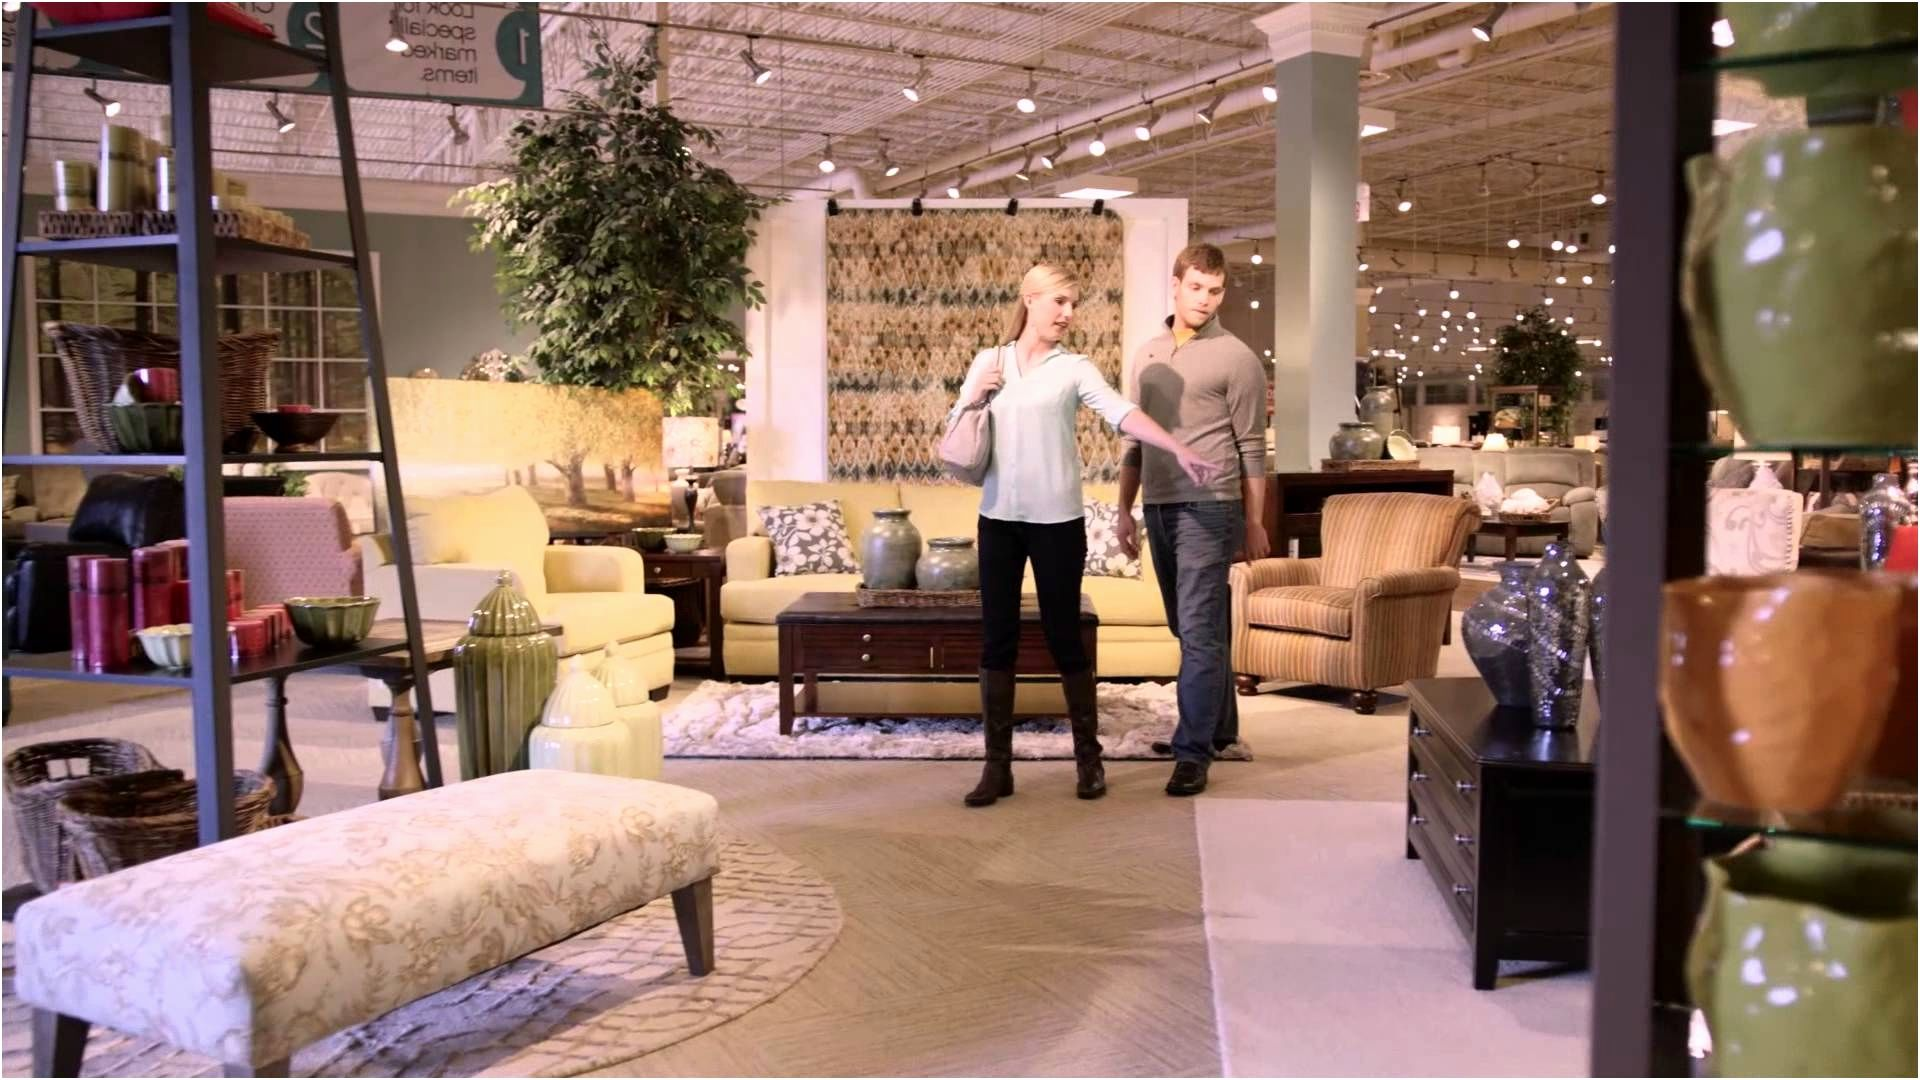 unique furniture row sofa mart online-Lovely Furniture Row sofa Mart Architecture